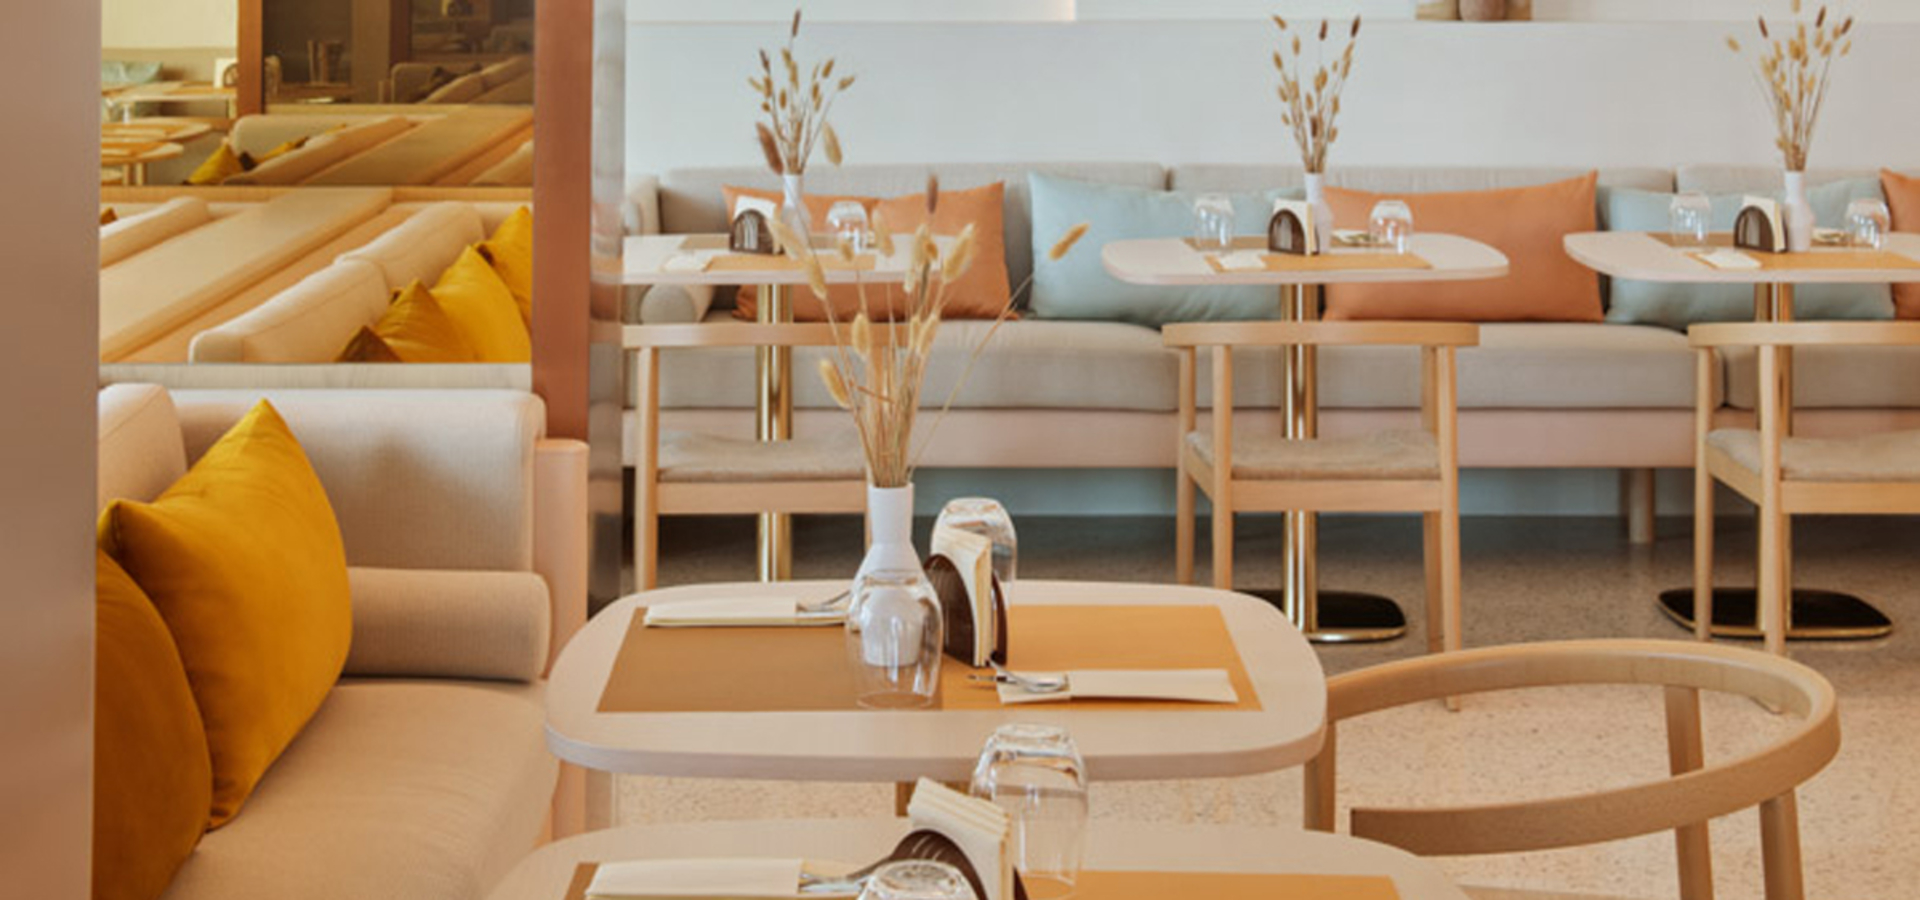 How light was key to designing the interior of new restaurant Toplum